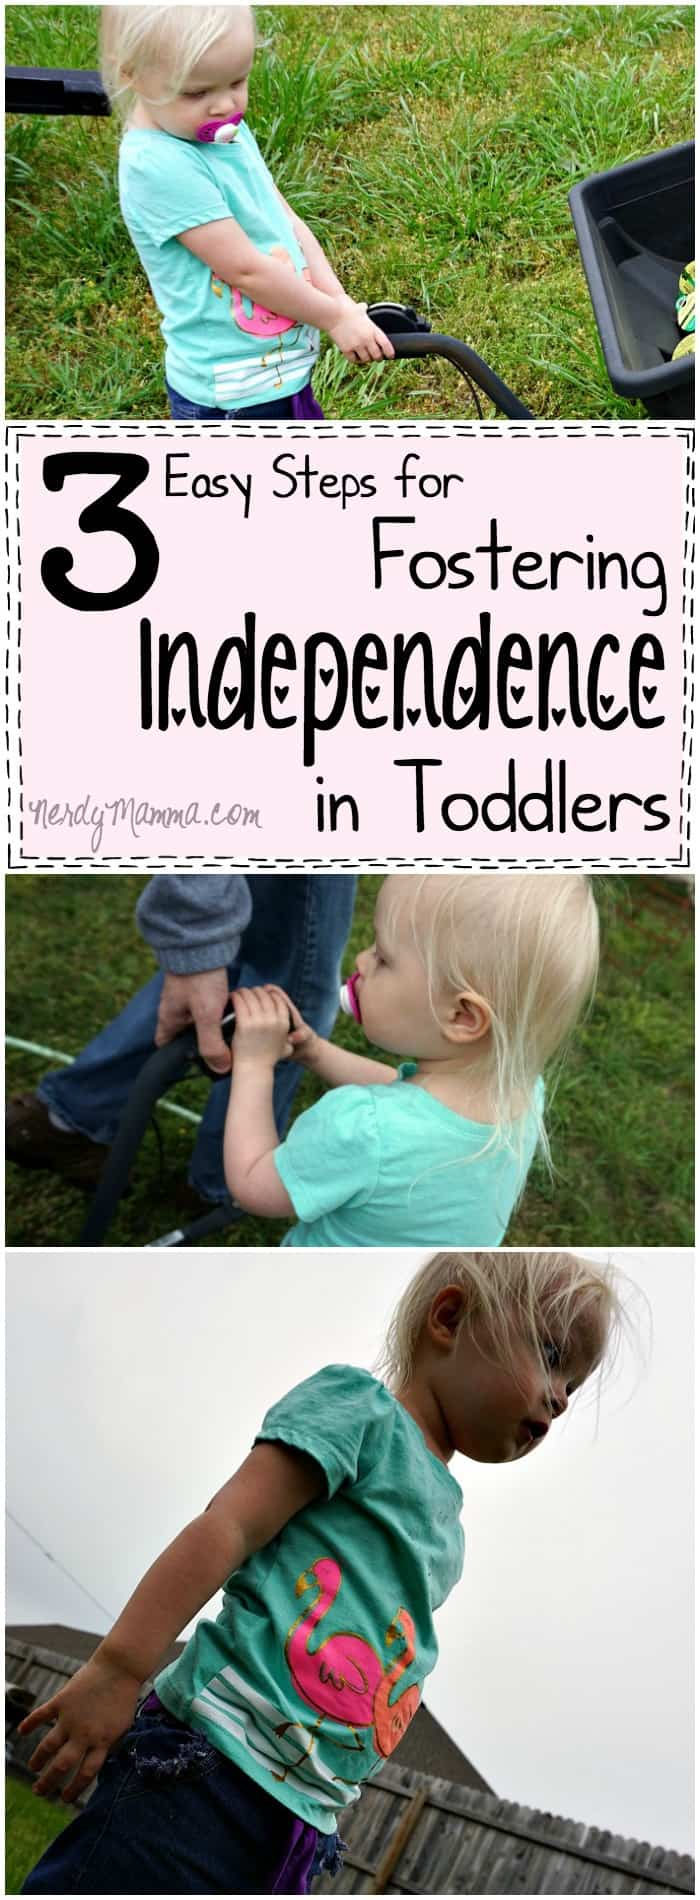 I LOVE these 3 easy steps for building independence in toddlers! How simple--but effective.